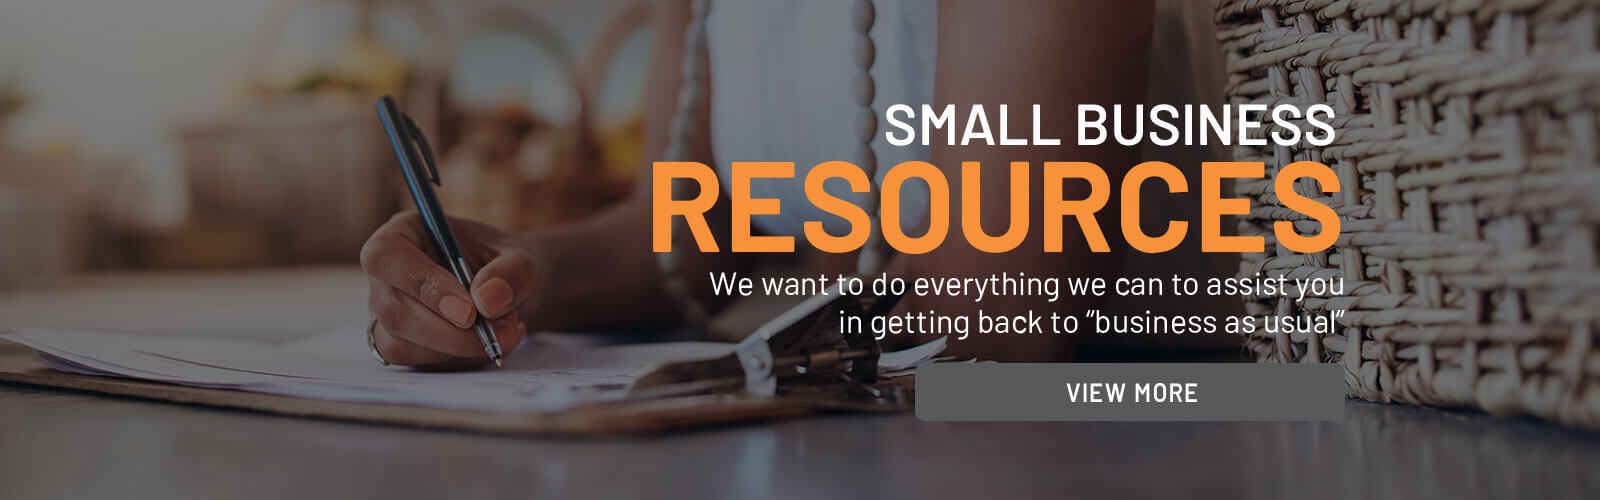 Small Business Resources Slider